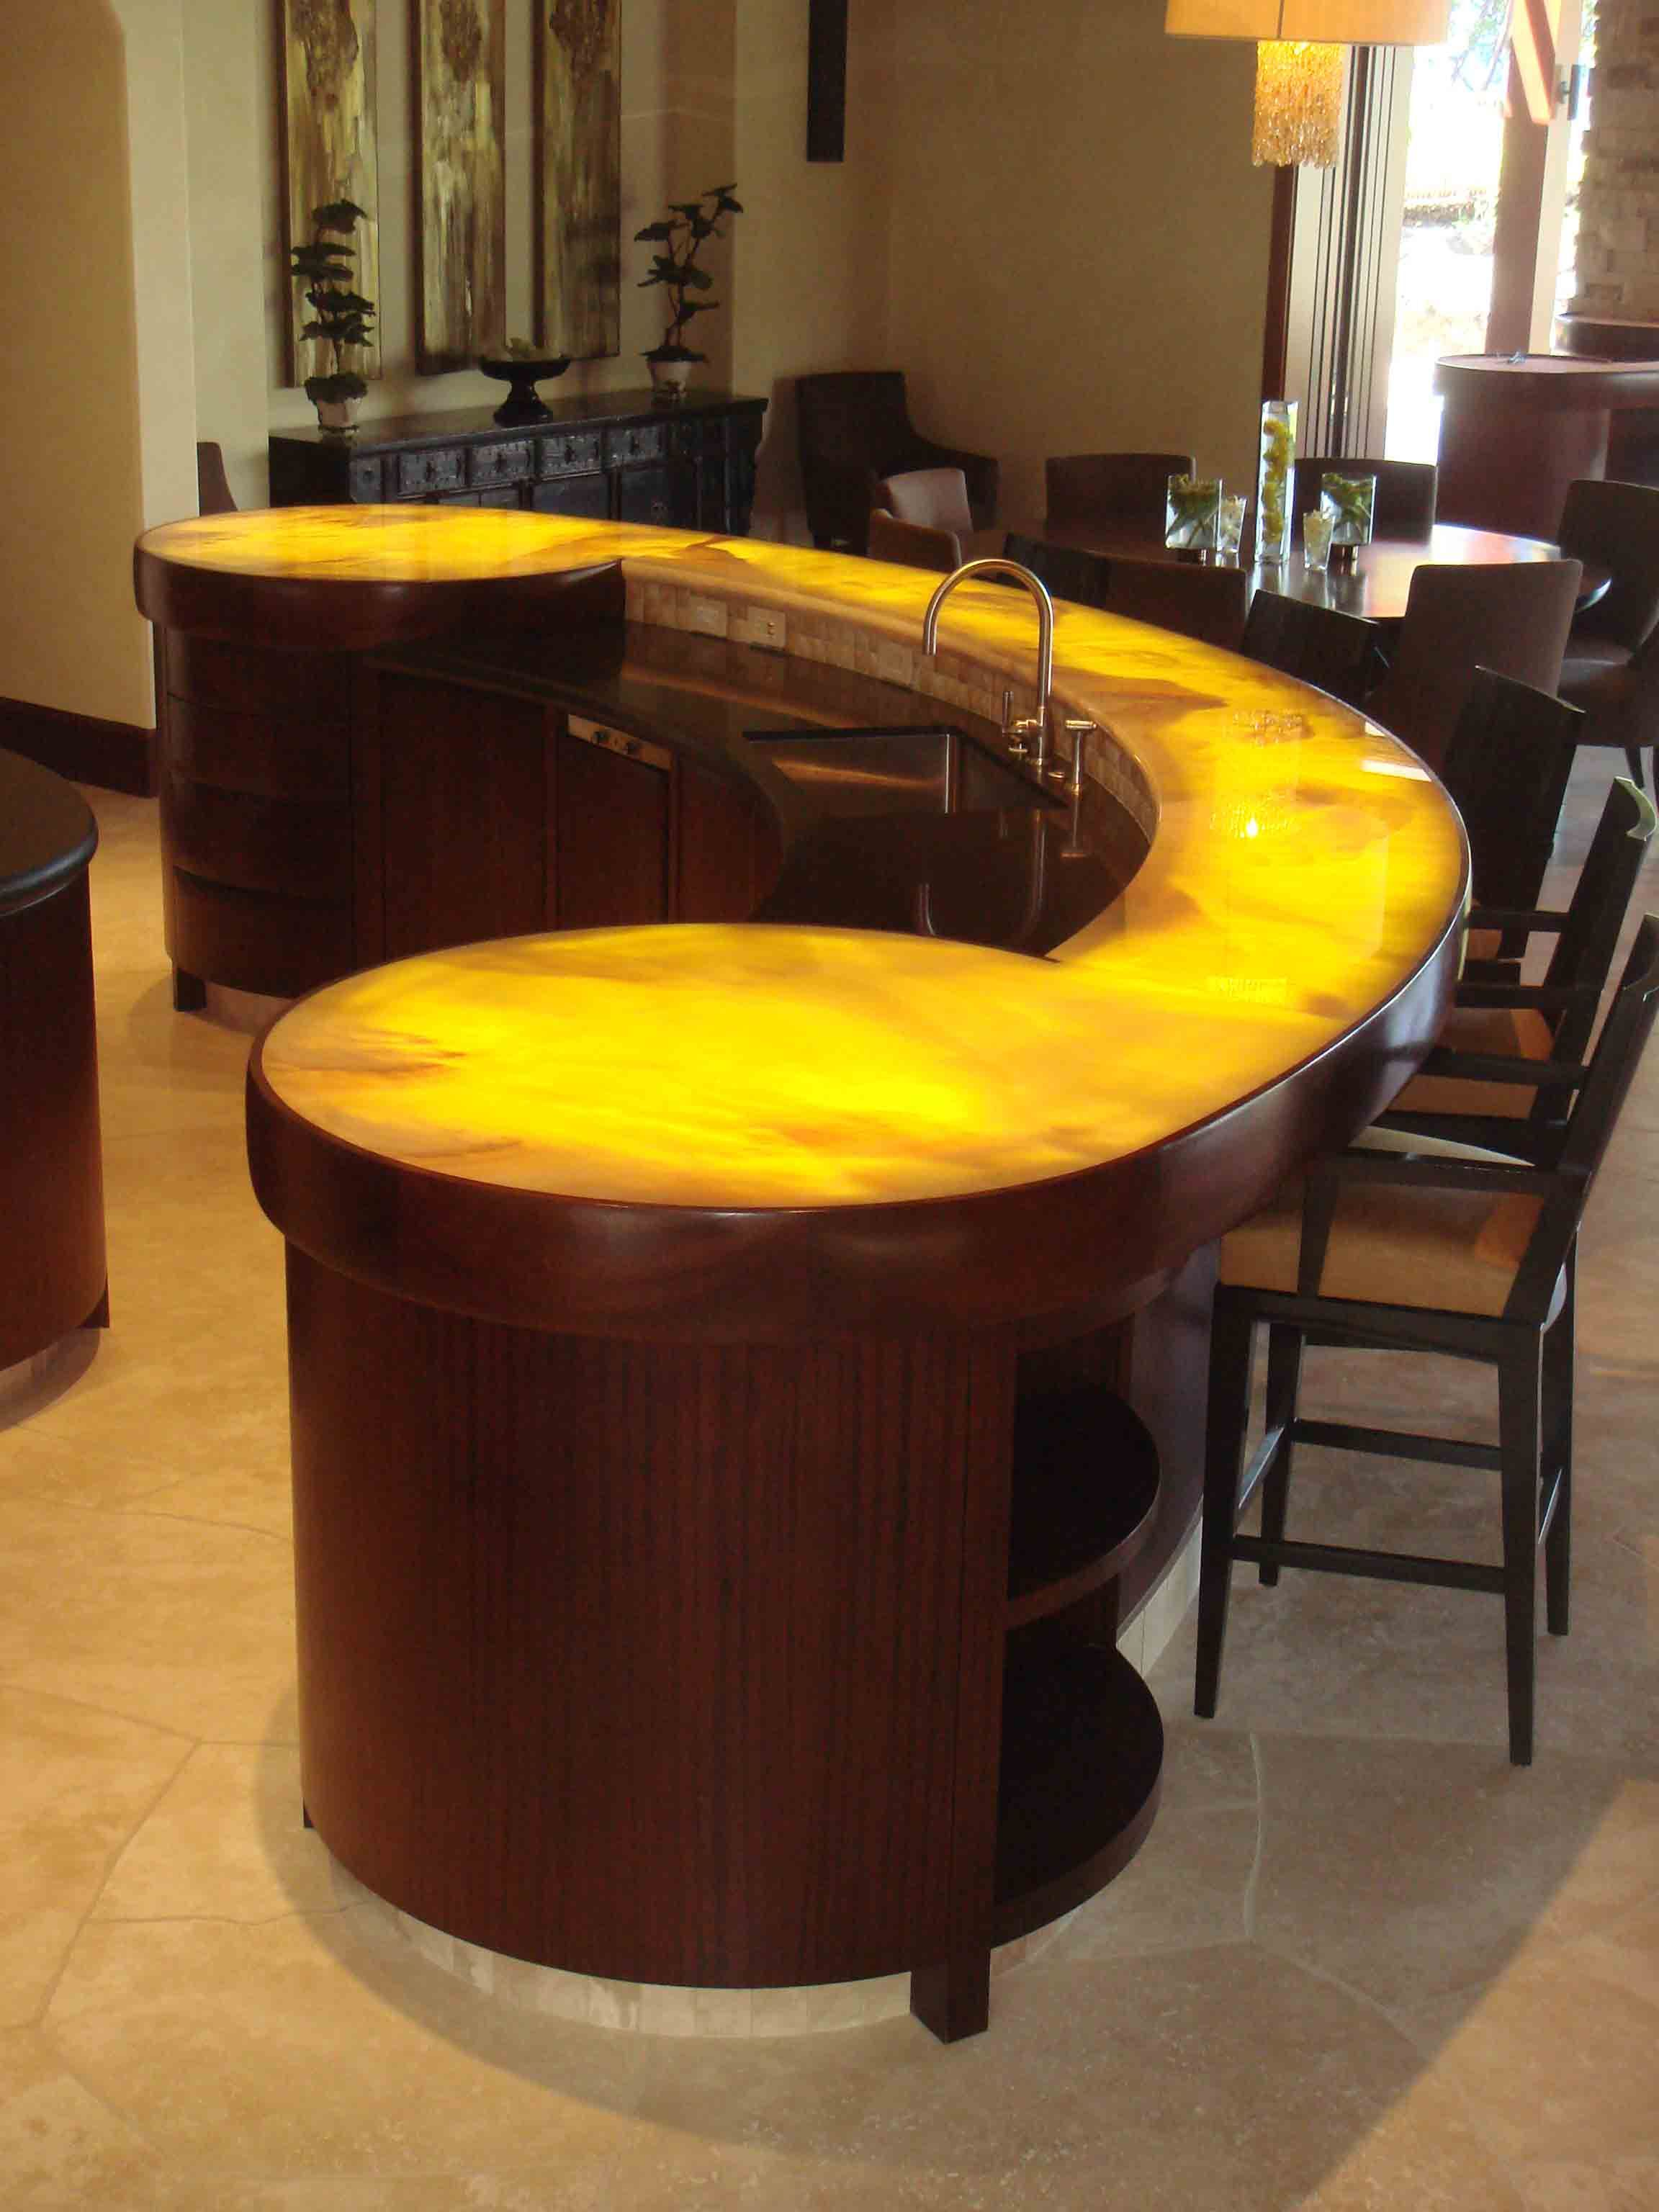 Fetching modern bar counter designs for home design with for Bar in kitchen ideas